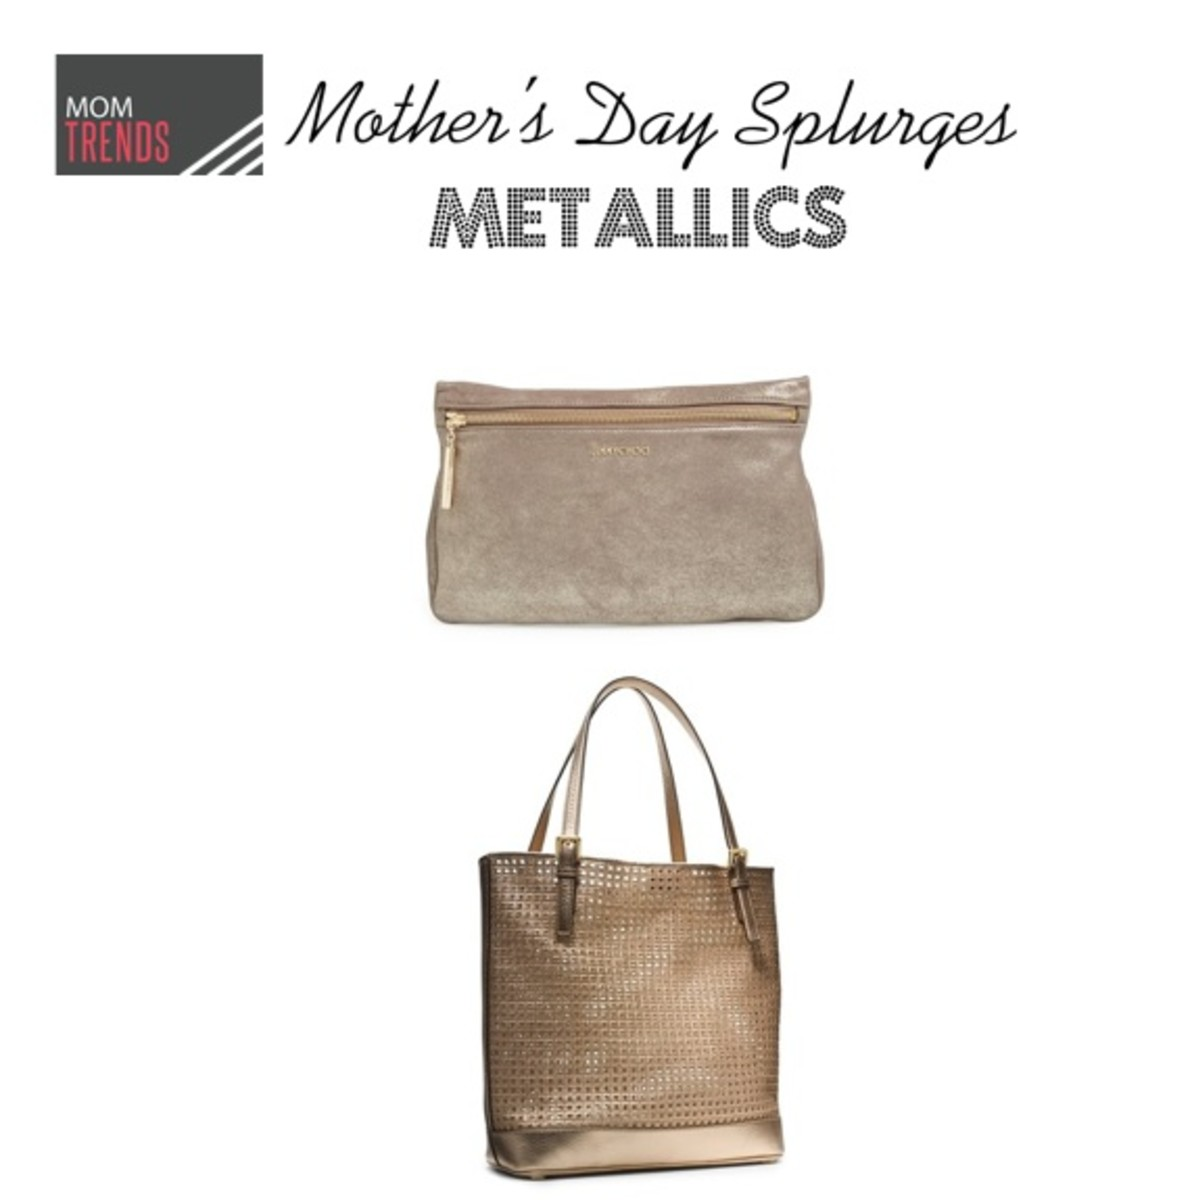 Handbags For Mother S Day